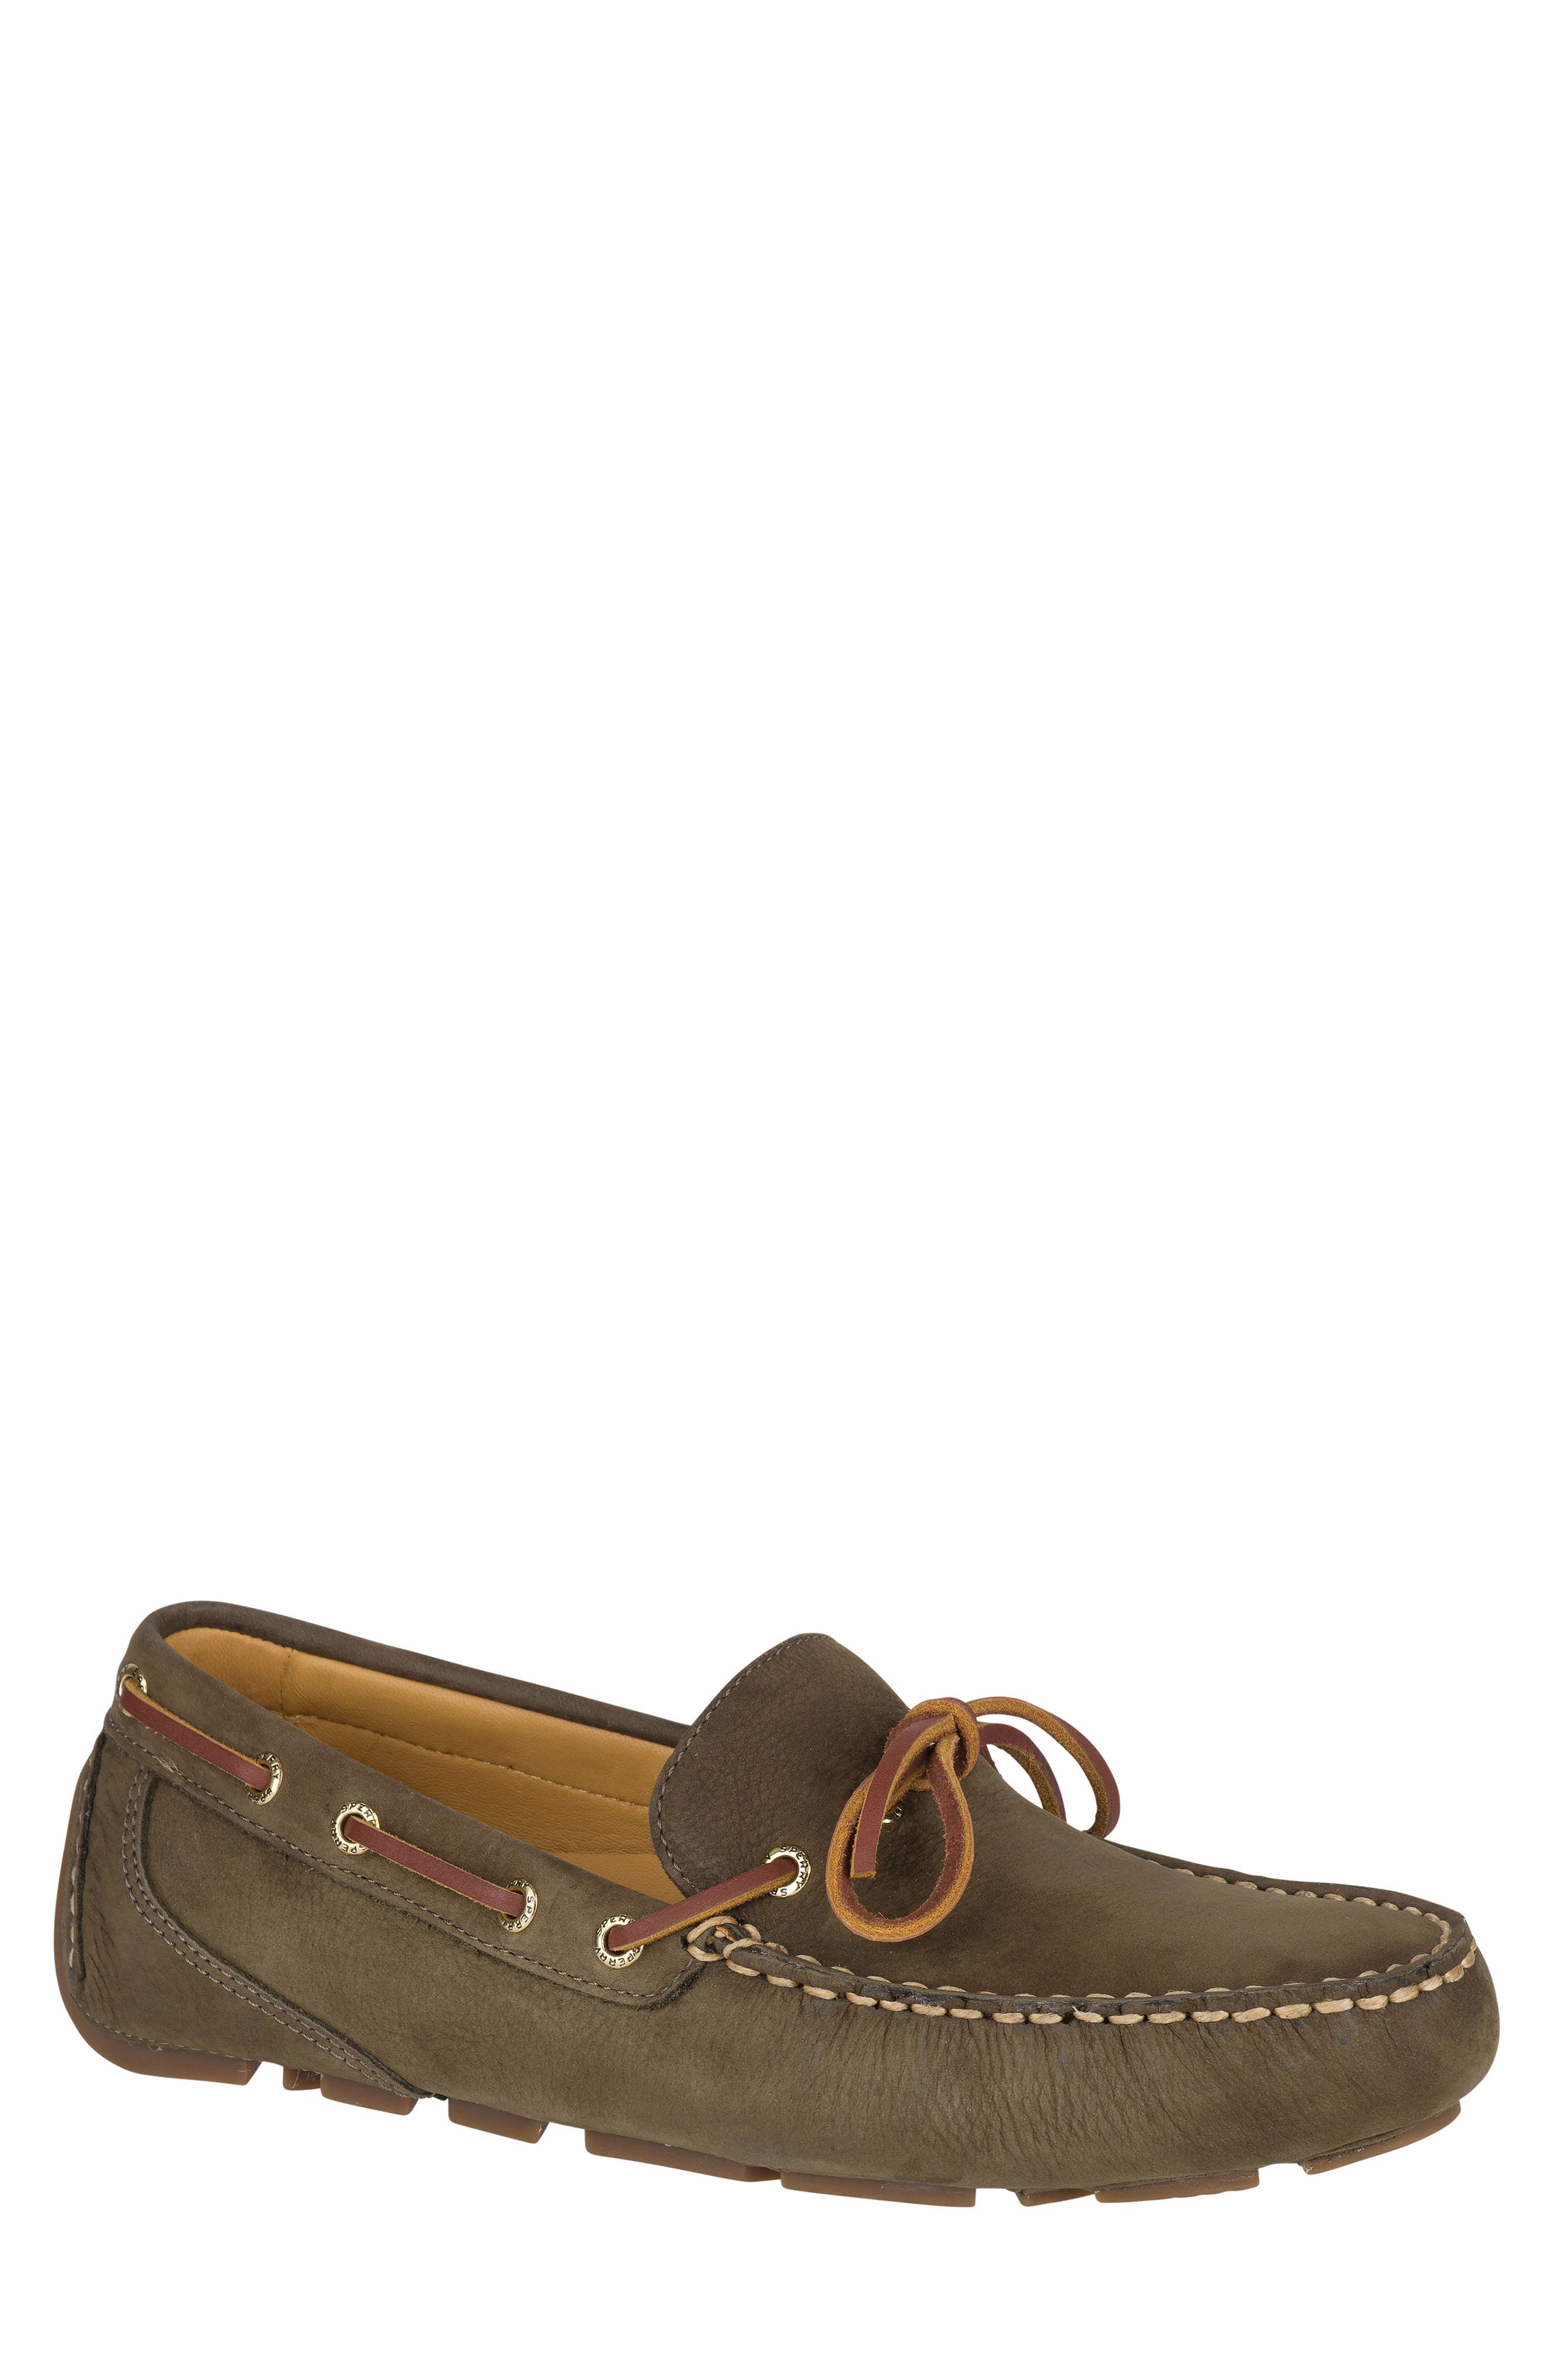 Image of Sperry Gold Harpswell 1 Eye Boat Shoe